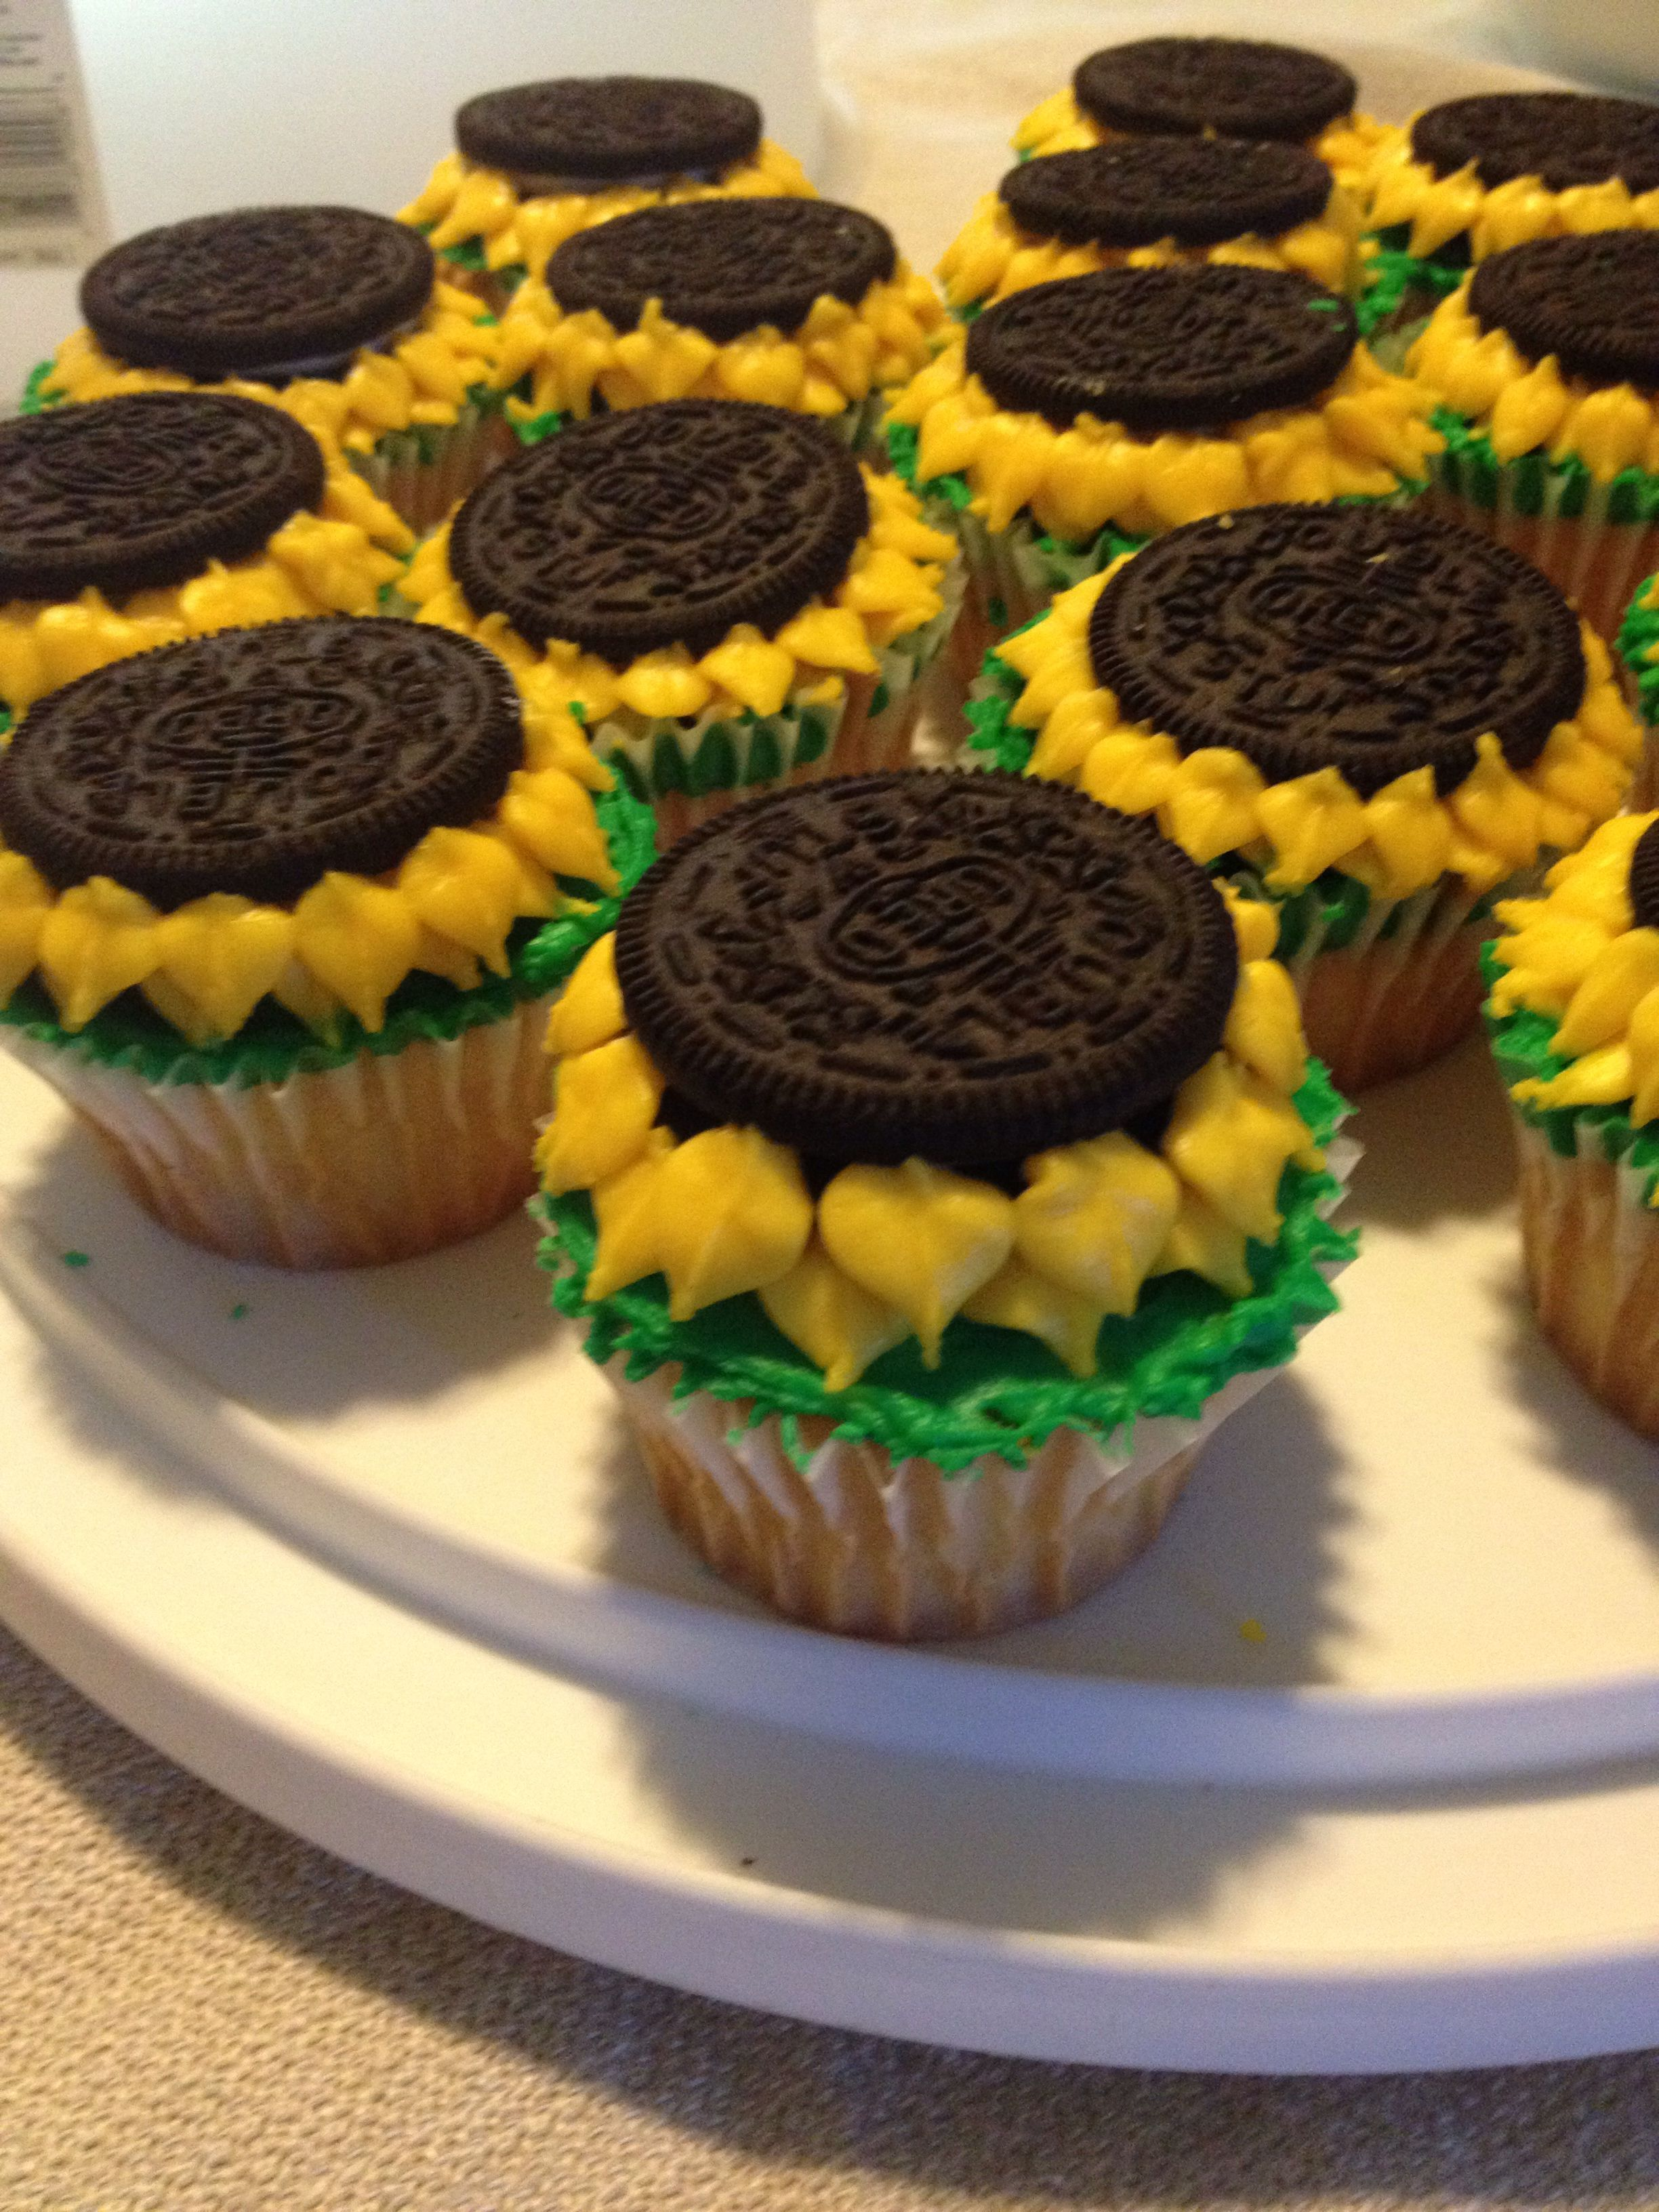 Sunflower cupcakes with an Oreo as the middle of the flower! Cute and easy! Great for a summer party! #sunflowercupcakes Sunflower cupcakes with an Oreo as the middle of the flower! Cute and easy! Great for a summer party! #sunflowercupcakes Sunflower cupcakes with an Oreo as the middle of the flower! Cute and easy! Great for a summer party! #sunflowercupcakes Sunflower cupcakes with an Oreo as the middle of the flower! Cute and easy! Great for a summer party! #sunflowercupcakes Sunflower cupcak #sunflowercupcakes